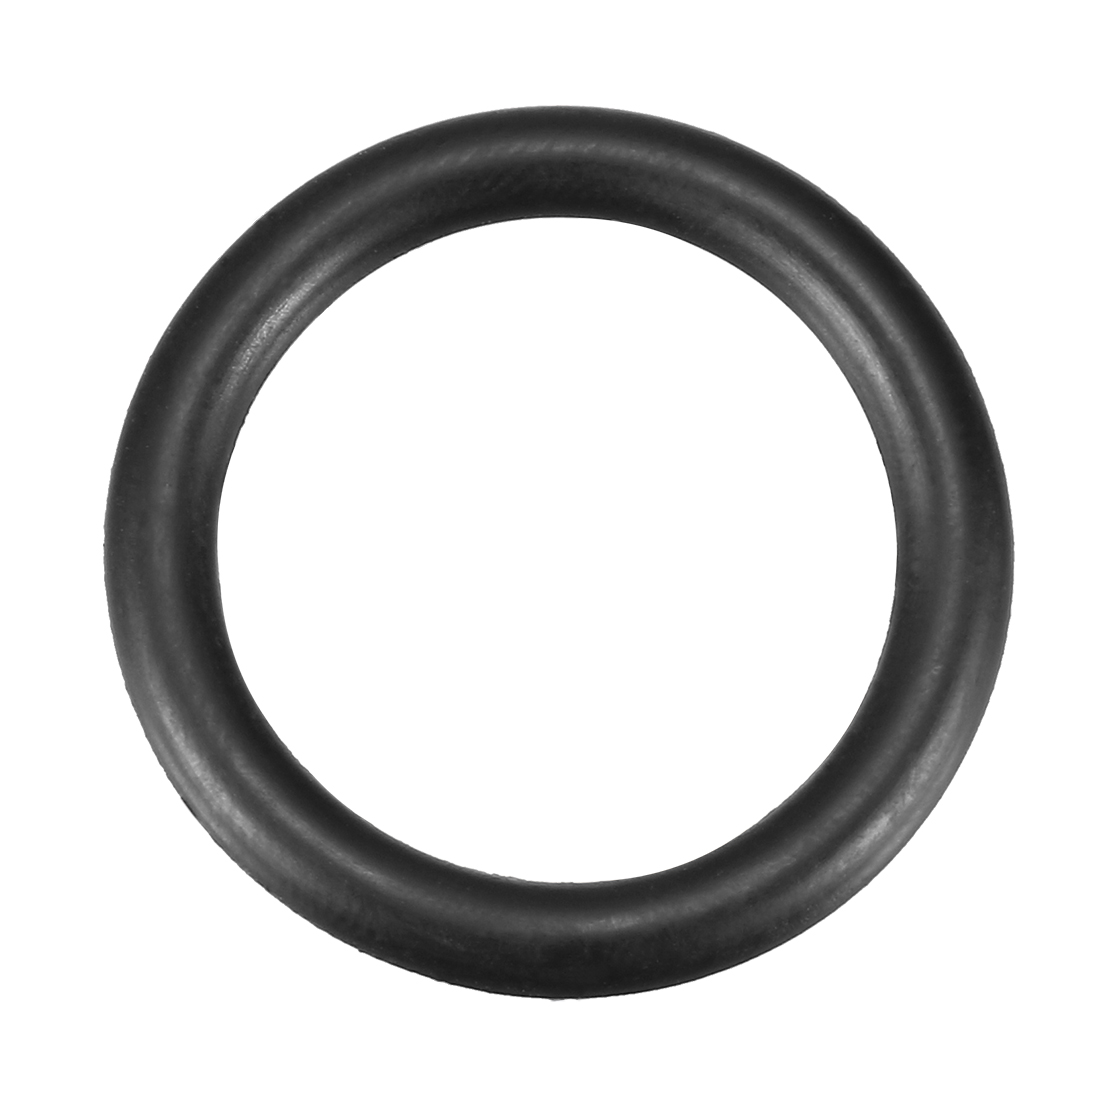 28mm x 21mm x 3.5mm Black Rubber O Ring Oil Seal Gasket 10 Pcs